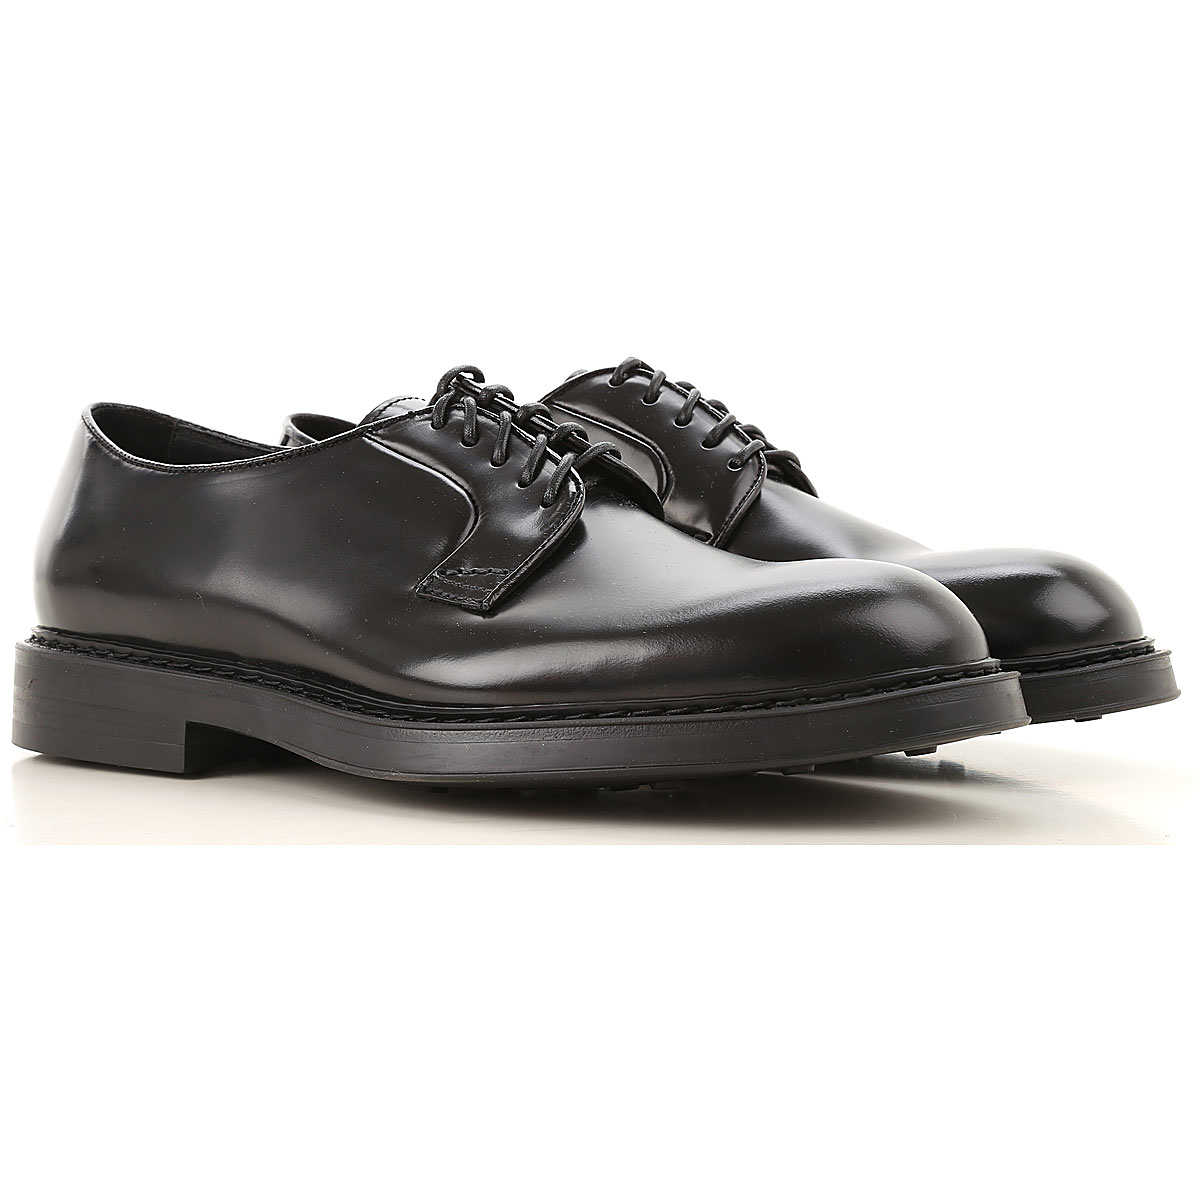 Doucals Lace Up Shoes for Men Oxfords 5.5 6 6.5 7 8 8.5 9 9.5 Derbies and Brogues UK - GOOFASH